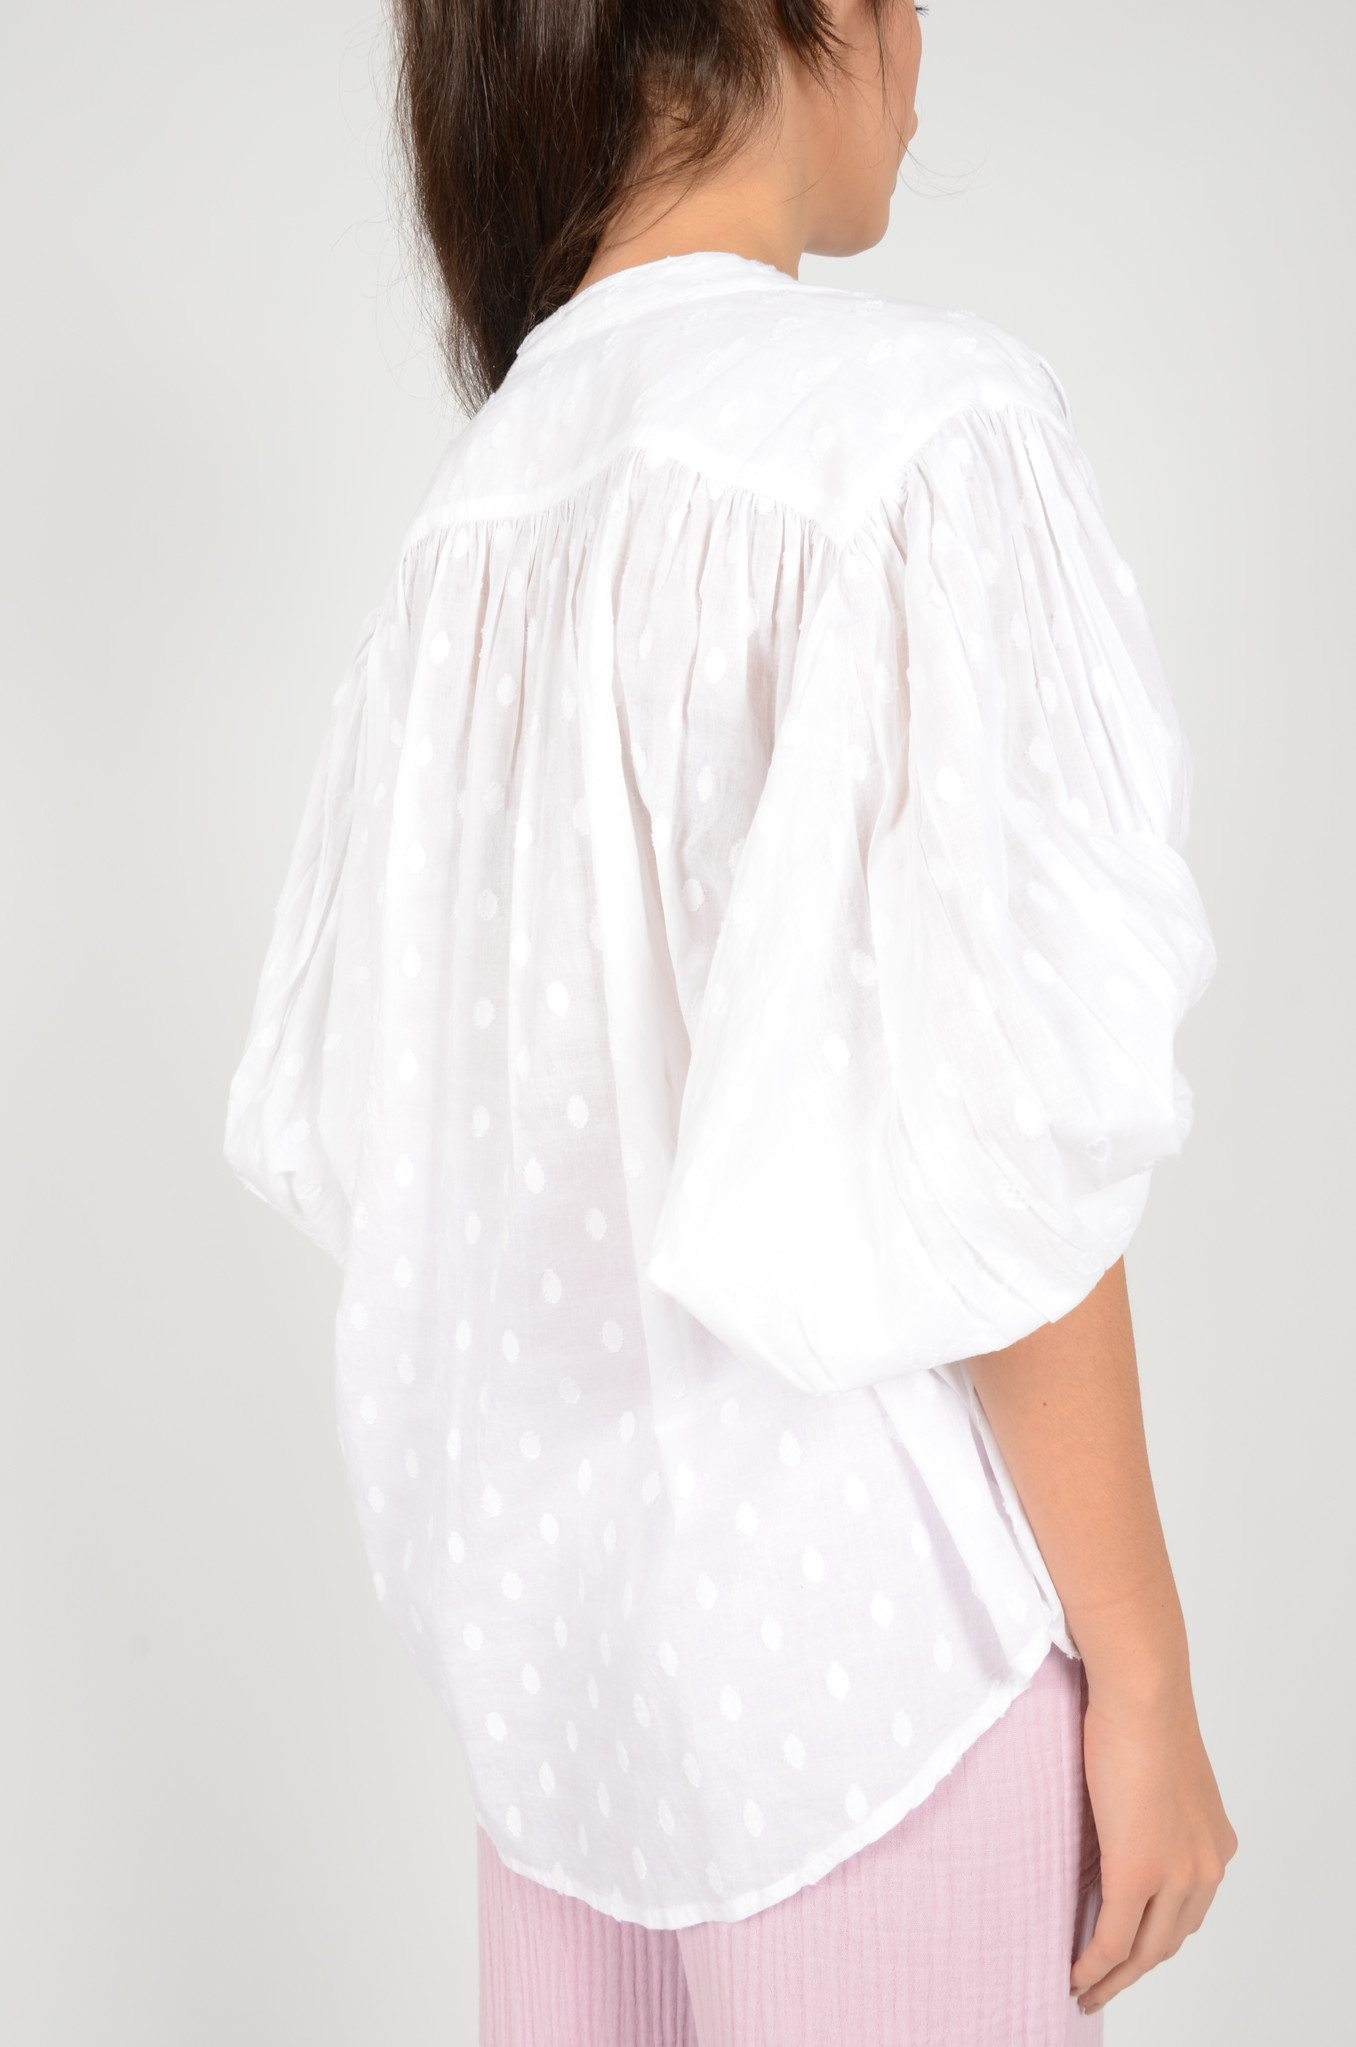 BALLOON BLOUSE IN WHITE-4